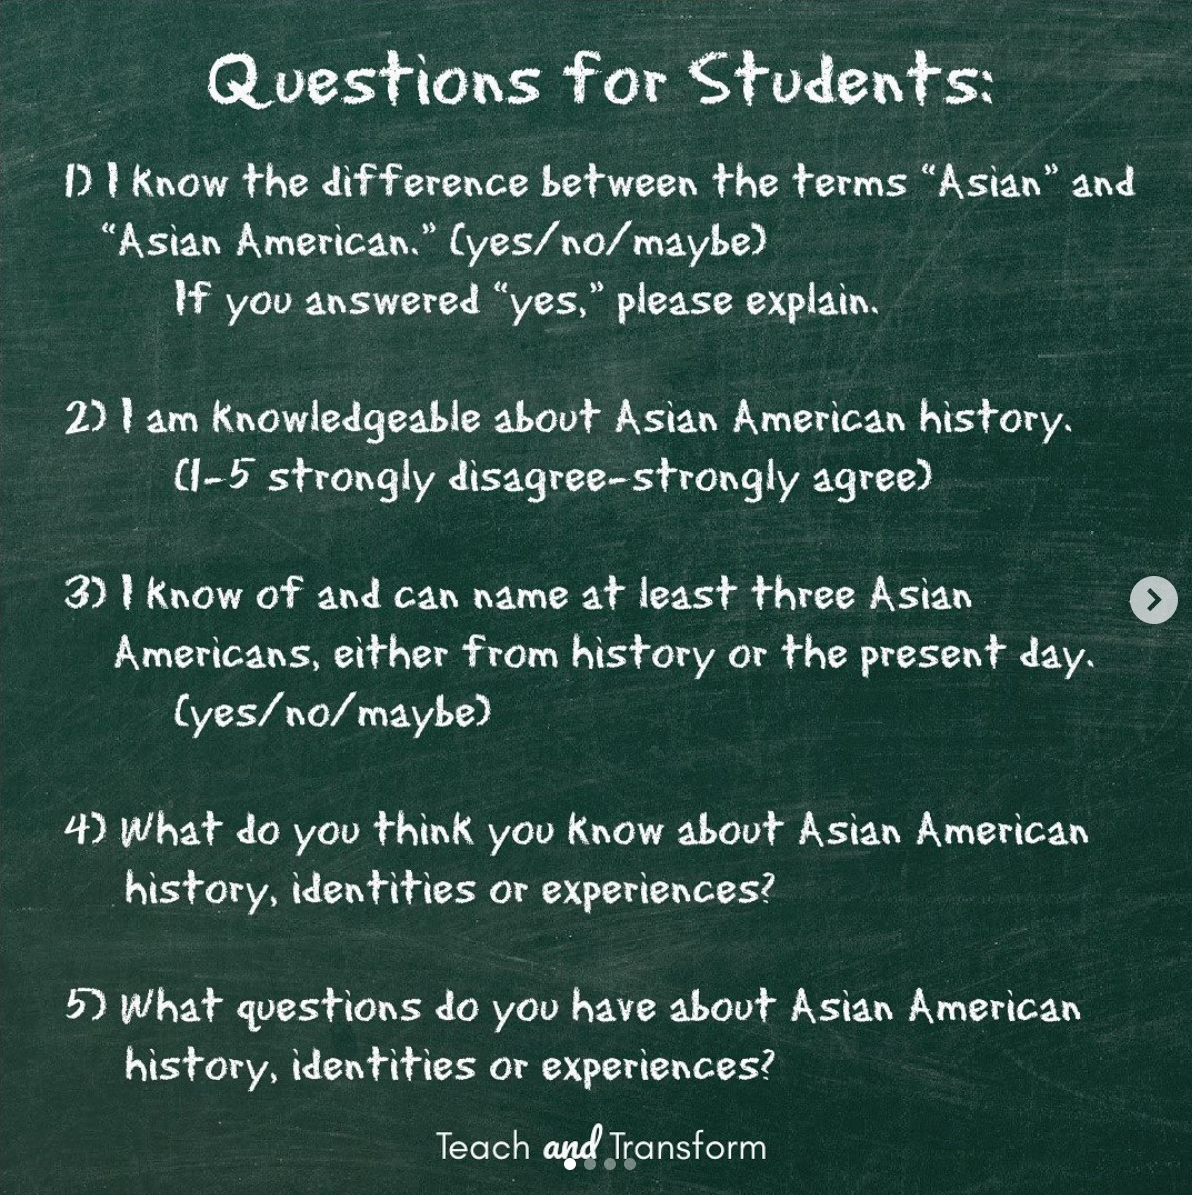 "1. I know the difference between the terms ""Asian"" and ""Asian American"" (yes/no/maybe). If you answered ""yes"", please explain. 2. I am knowledgeable about Asian American history. (1-5 strongly disagree - strongly agree) 3. I know of and can name at least three Asian Americans, either from history or the present day. (yes/no/maybe) 4. What do you think you know about Asian American history, identities, or experiences? 5. What questions do you have about Asian American history, identities, or experiences? Teach and Transform"